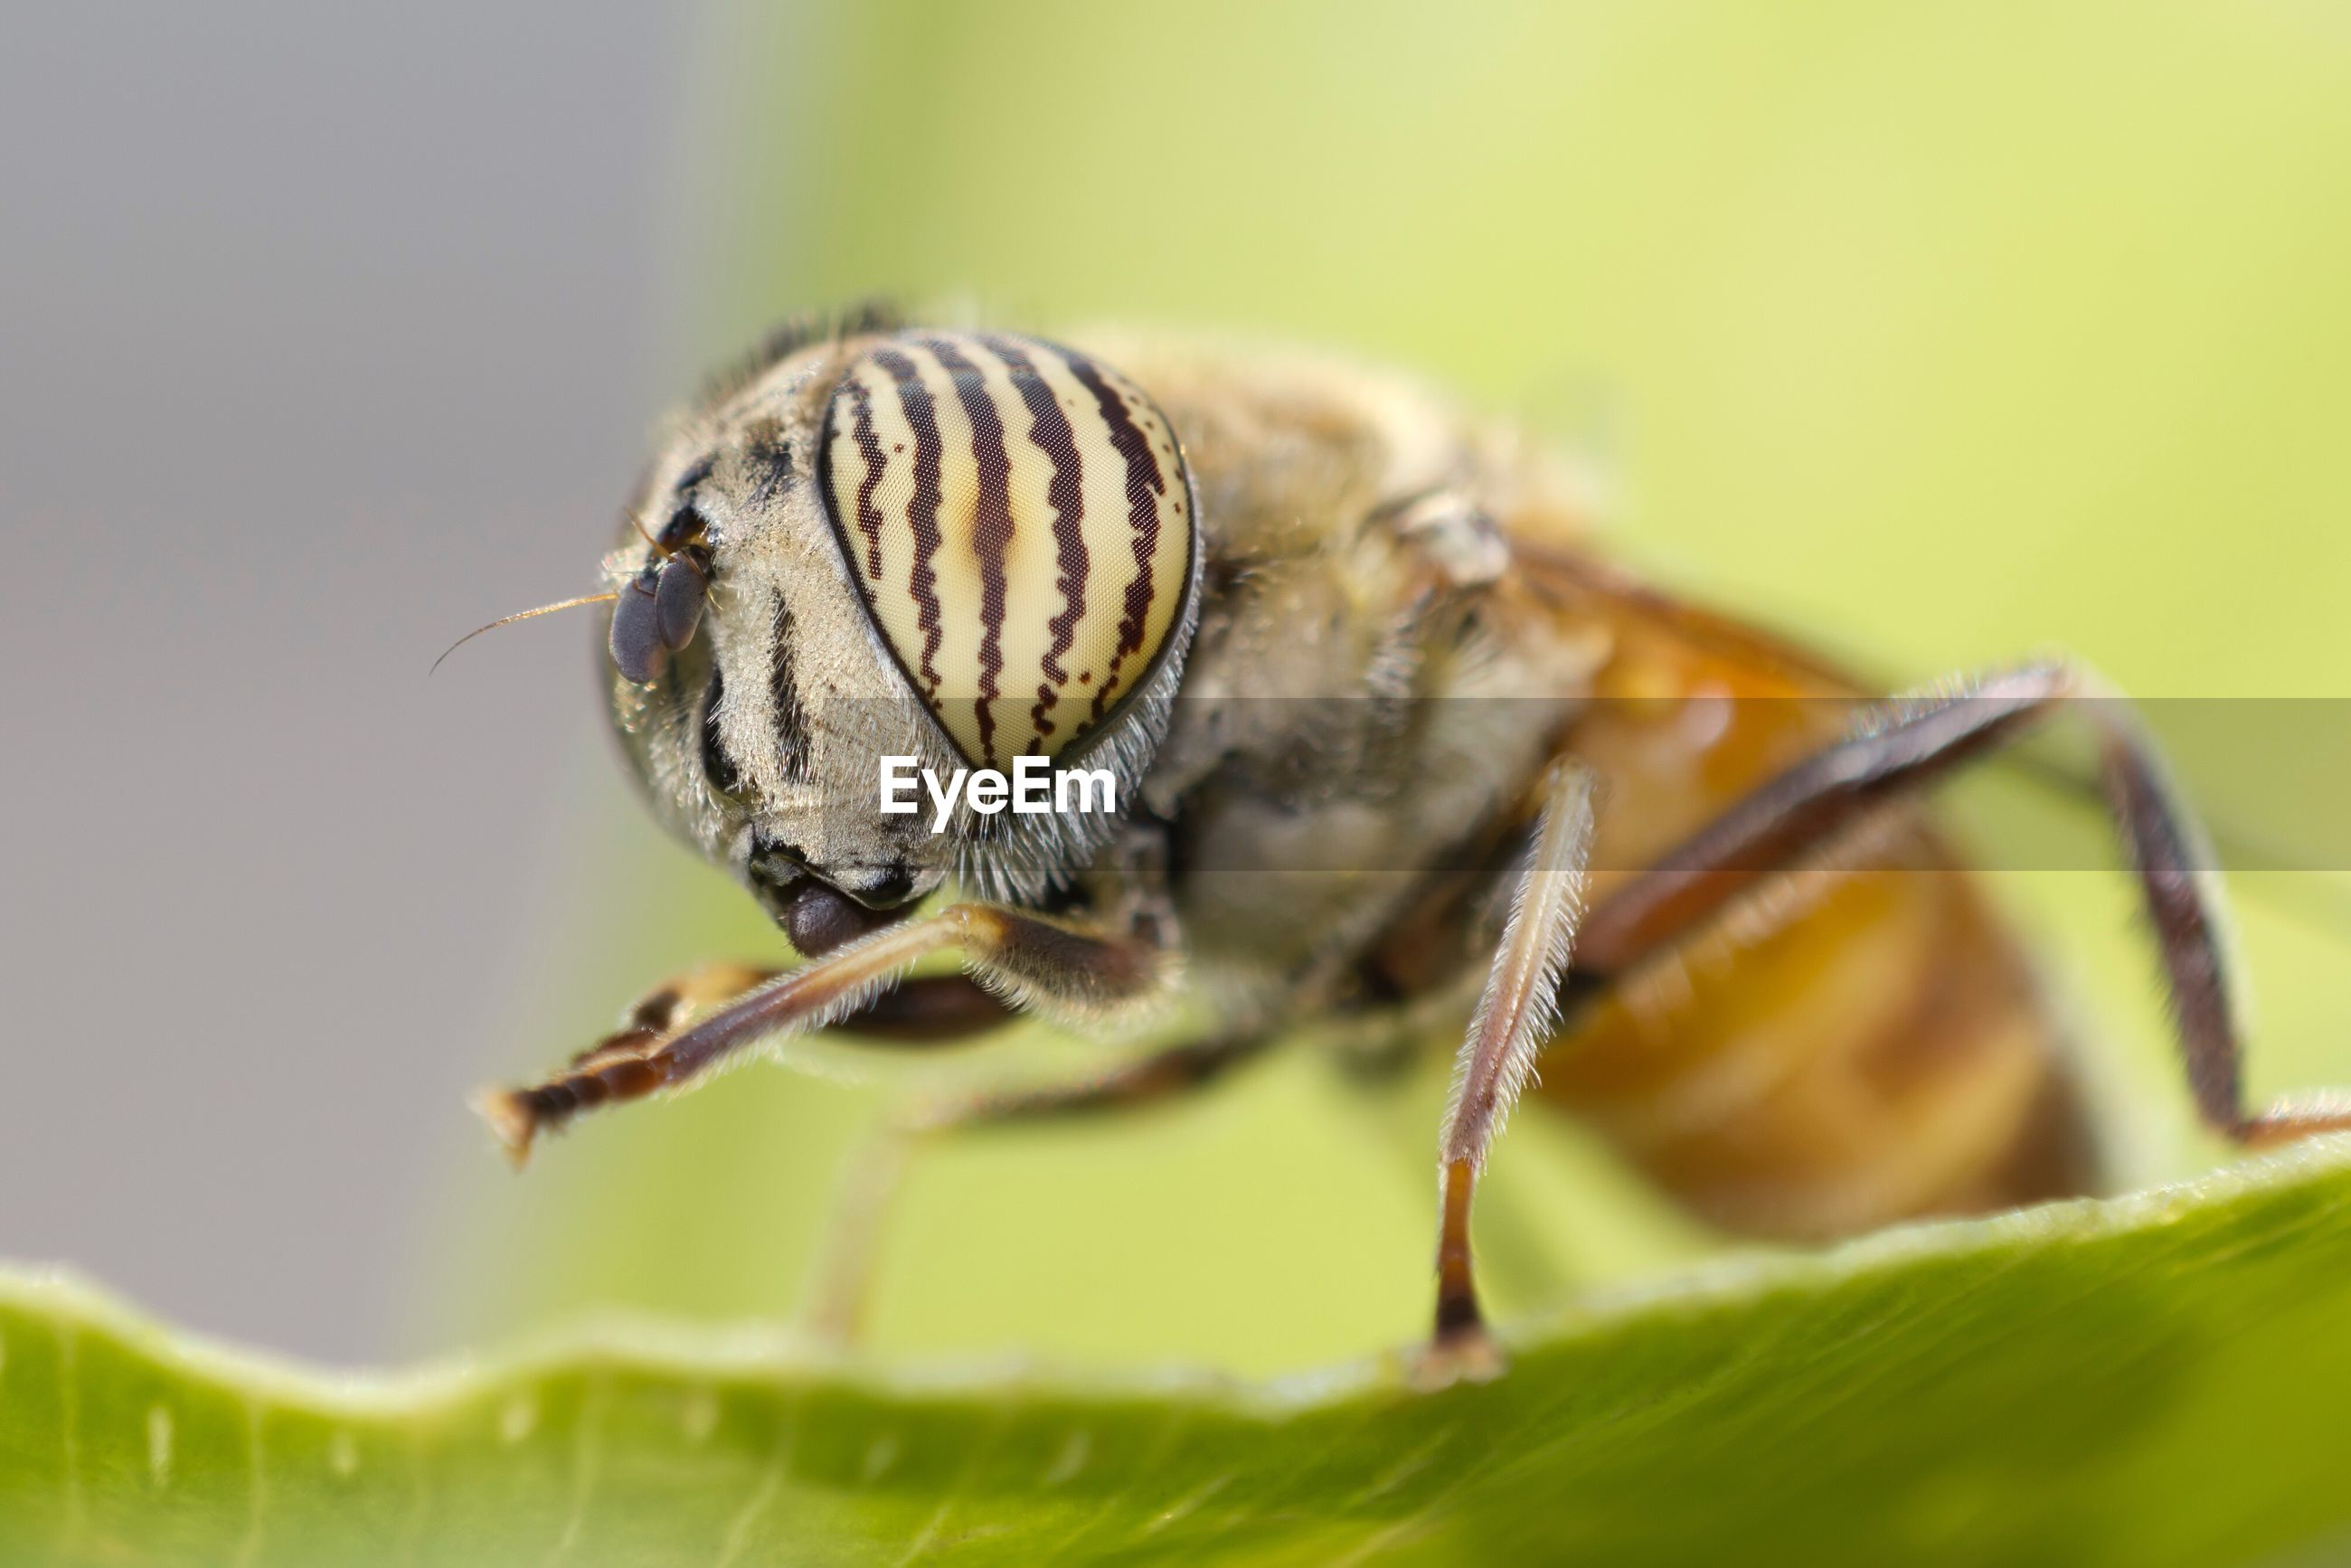 Extreme close-up of insect on leaf